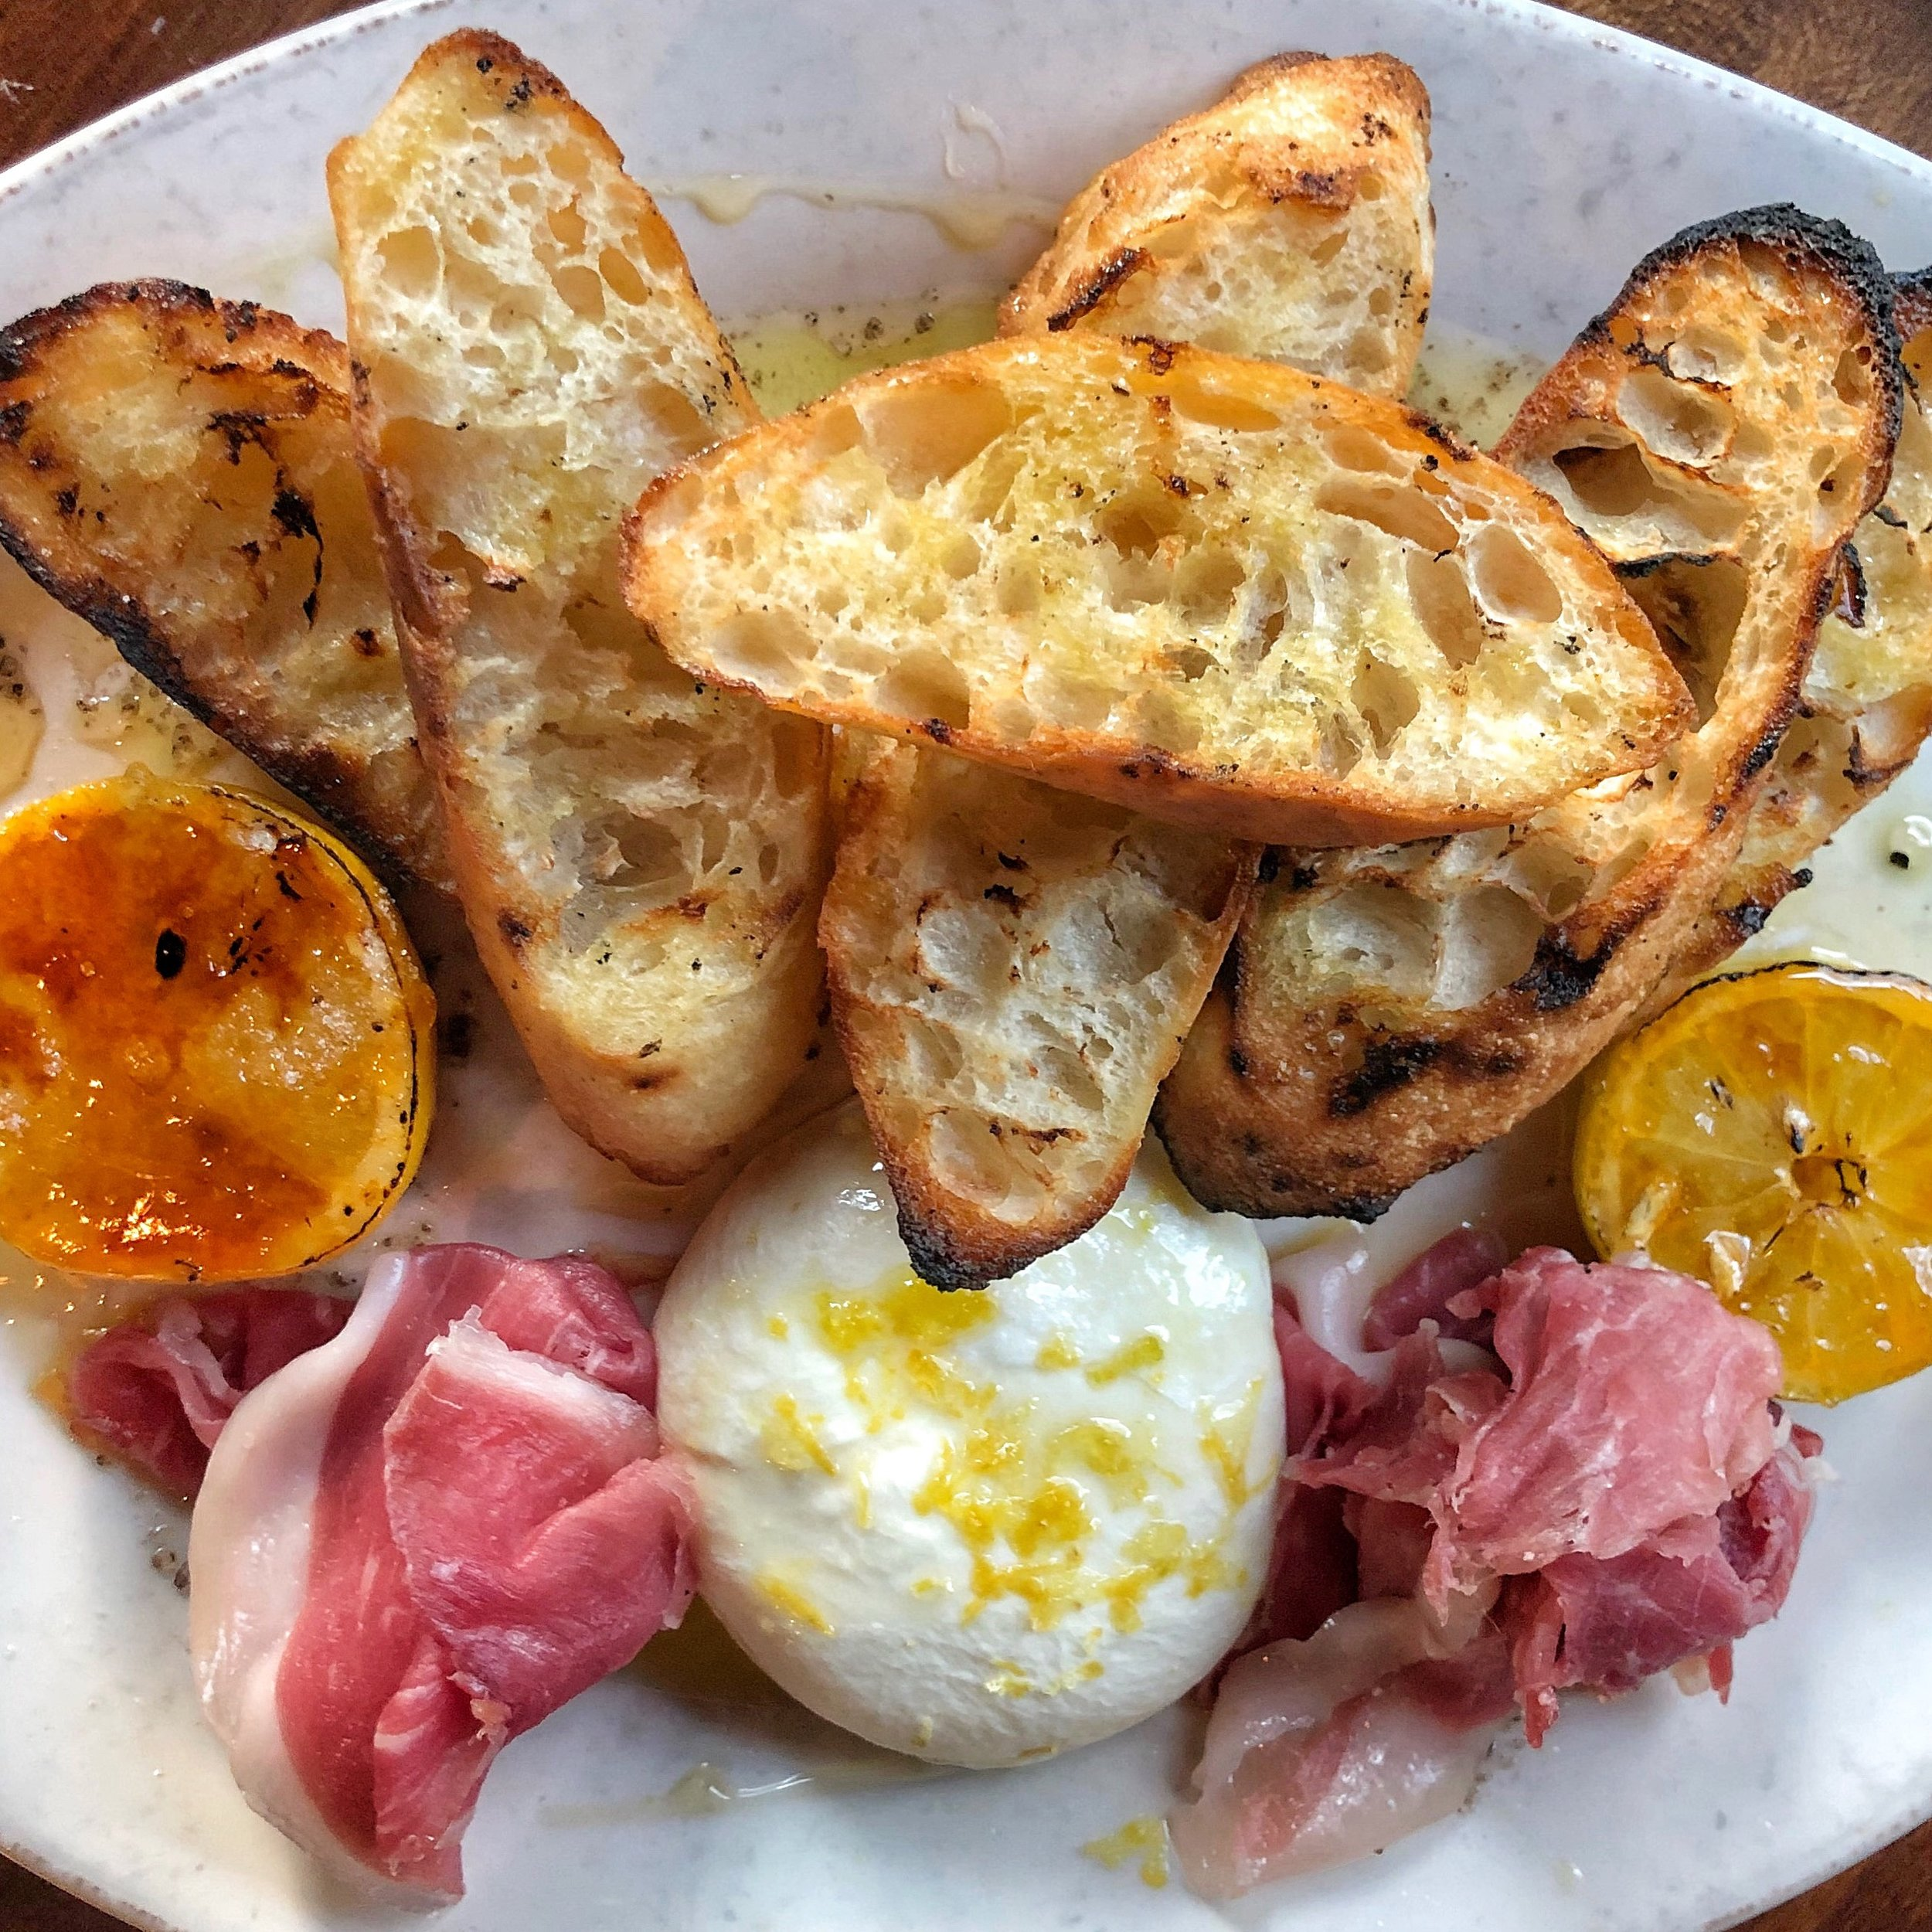 Burrata at 100%